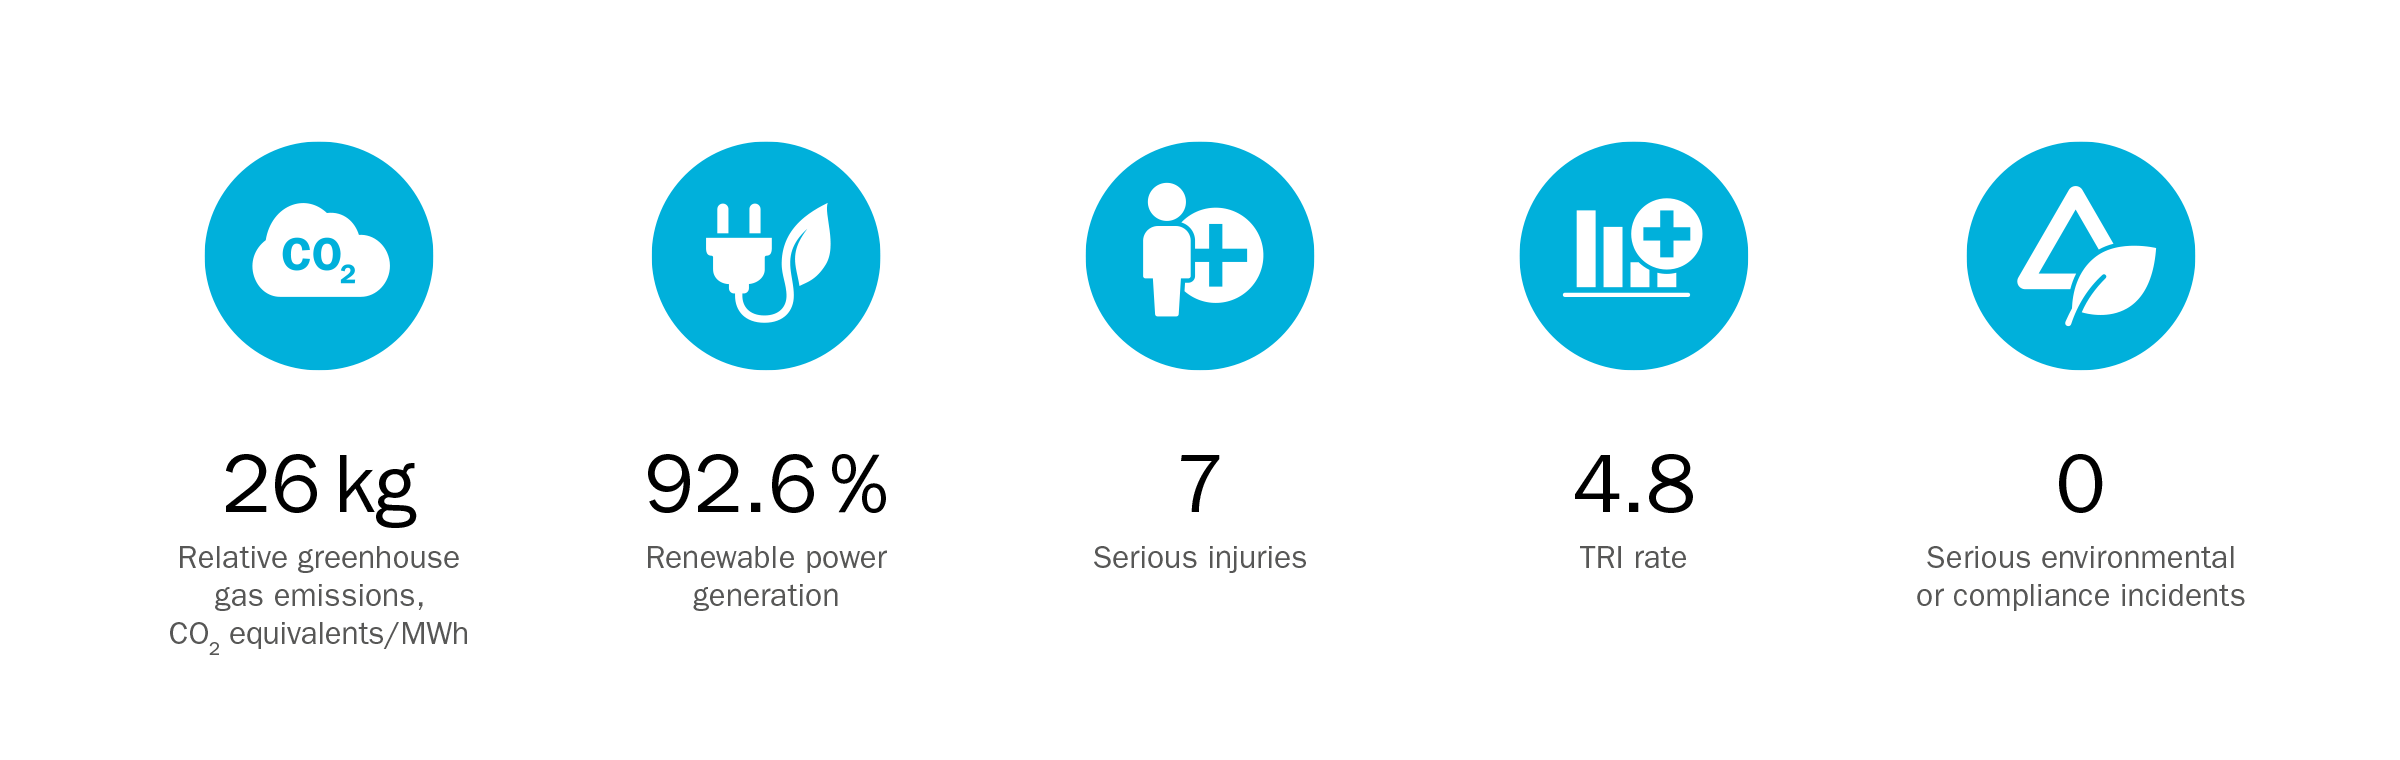 Graphic of key sustainability facts 2019